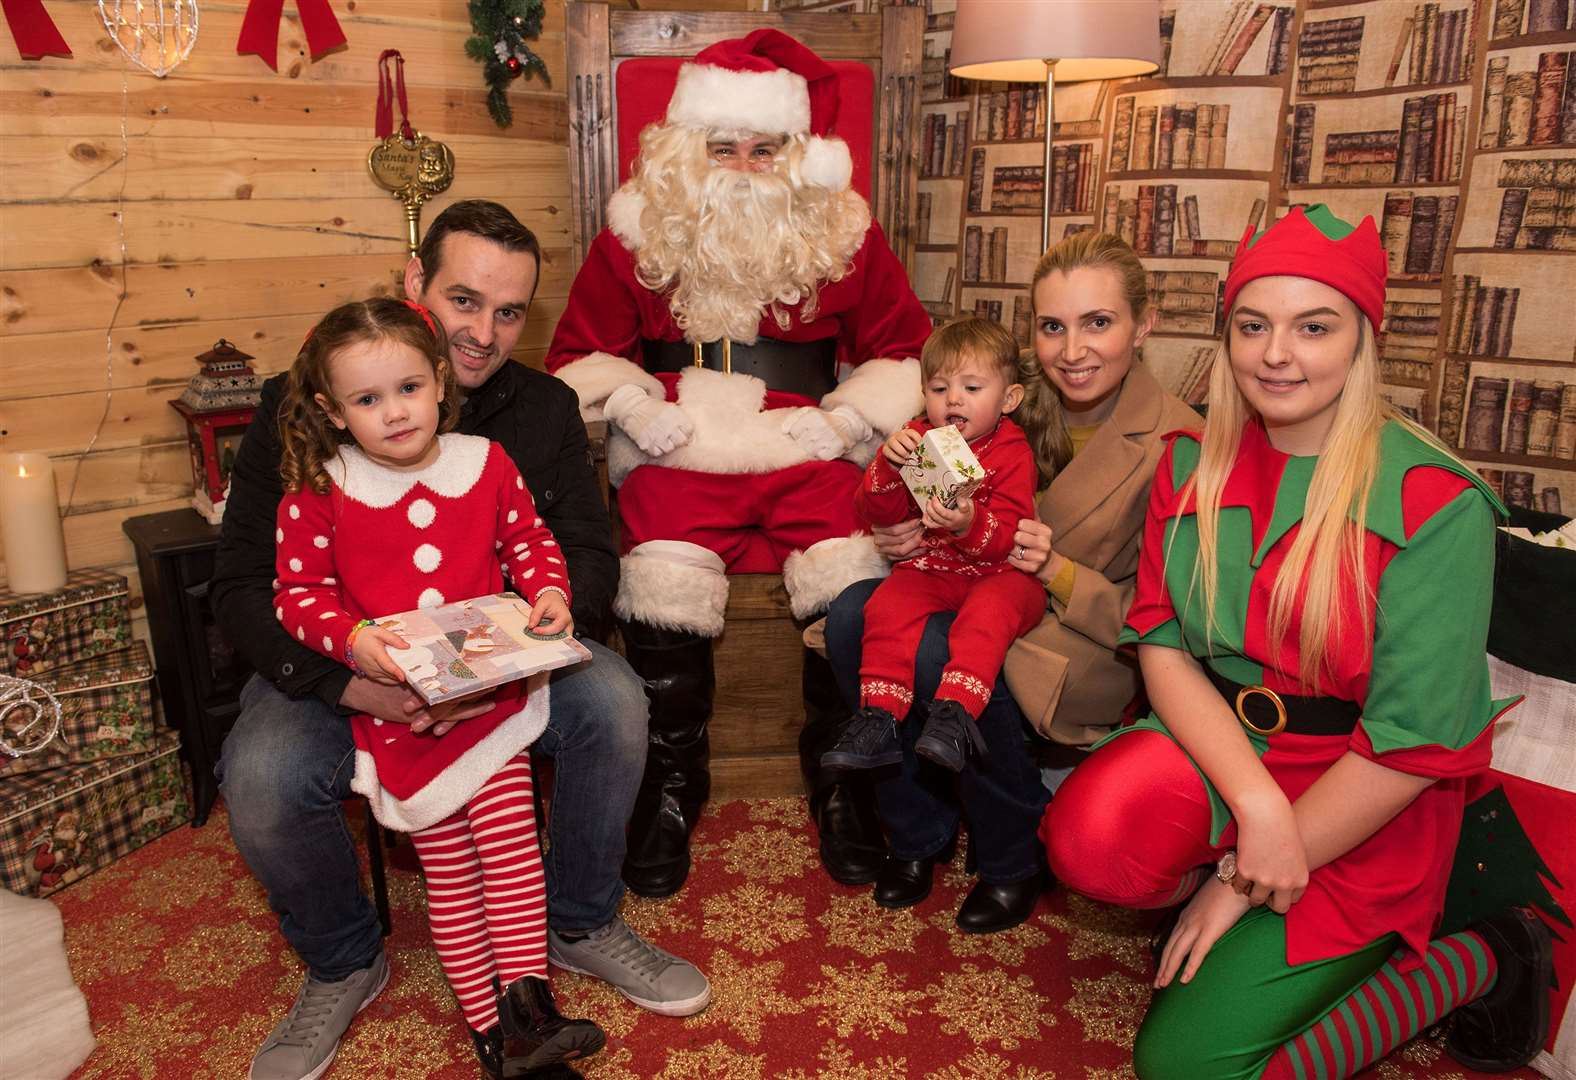 Find out when Santa Claus is coming to Bury St Edmunds this Christmas